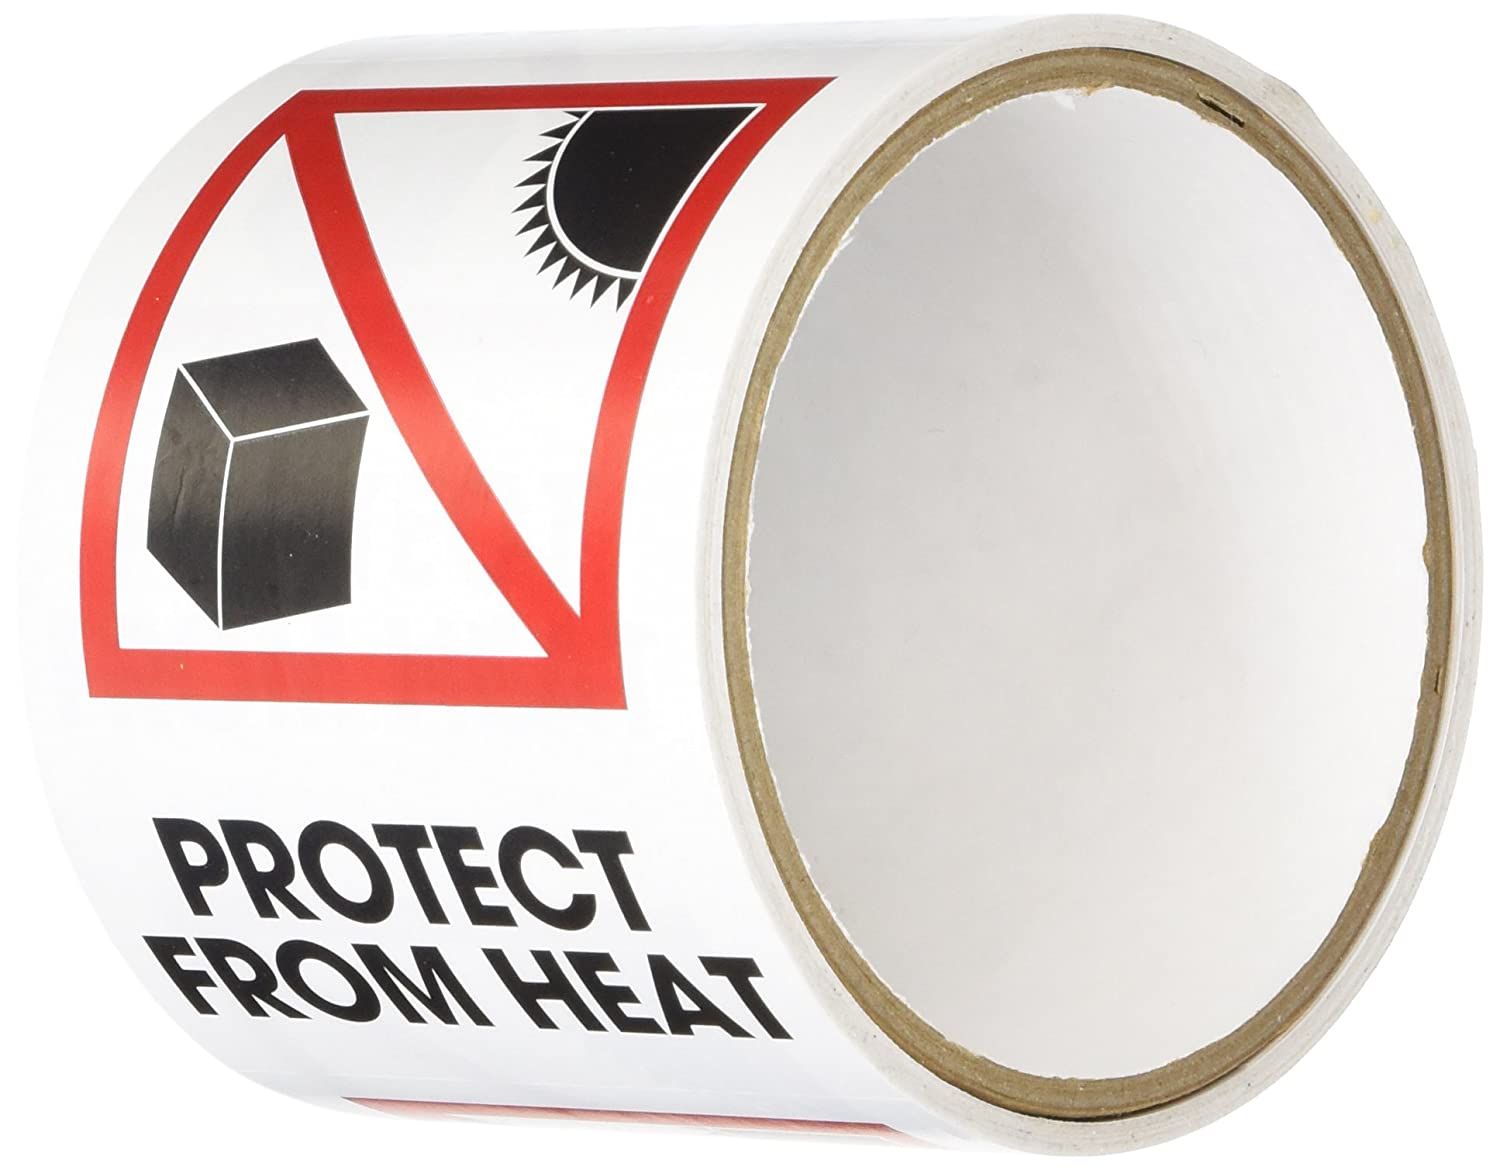 TapeCase SHIPLBL-078-50'Protect From Heat' Label - 50 per pack (1 Pack)